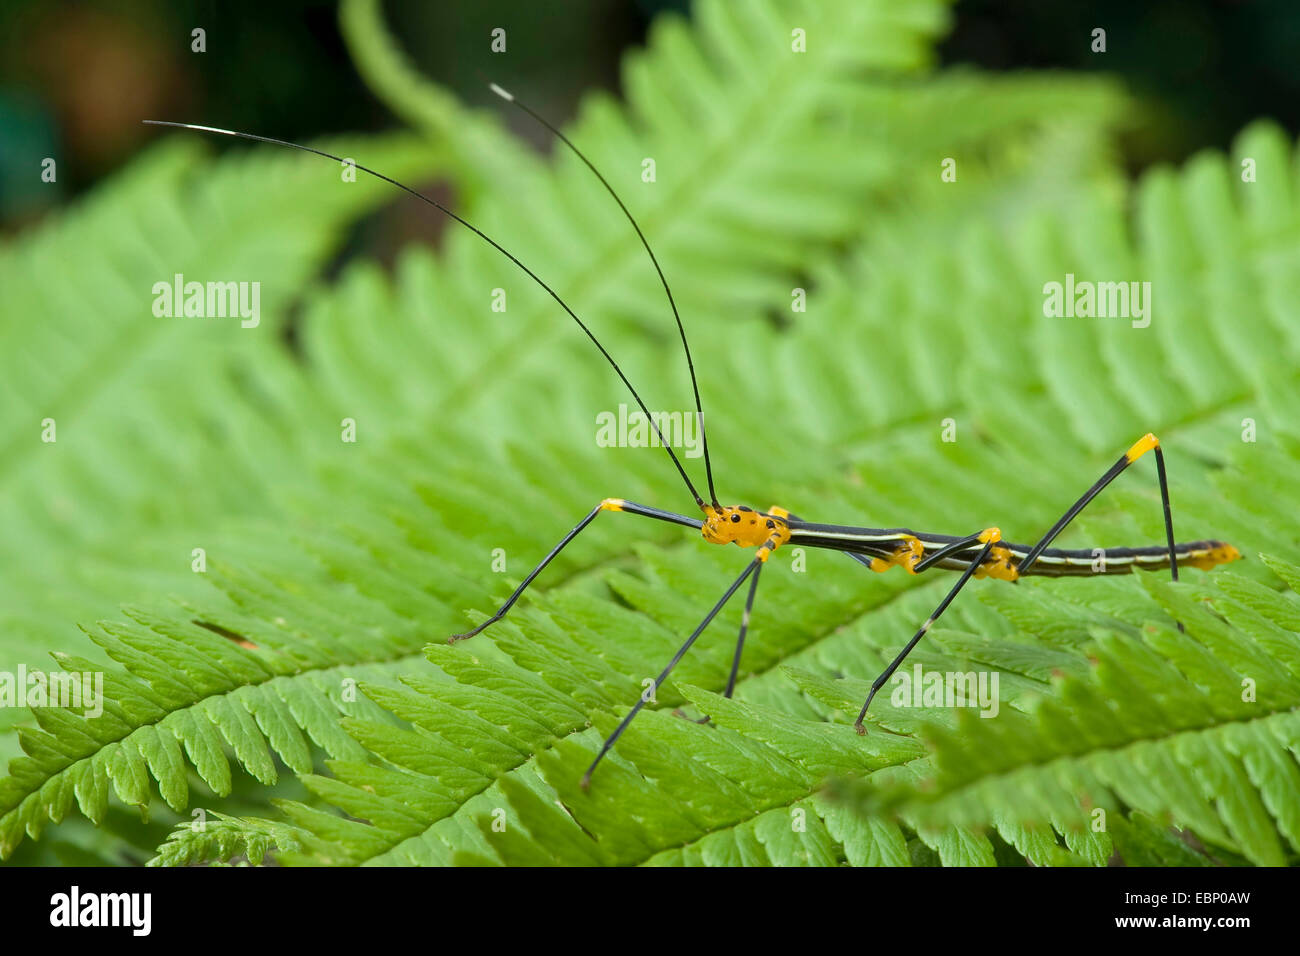 Peruvian fire stick (Oreophoetes peruana), on a leaf - Stock Image